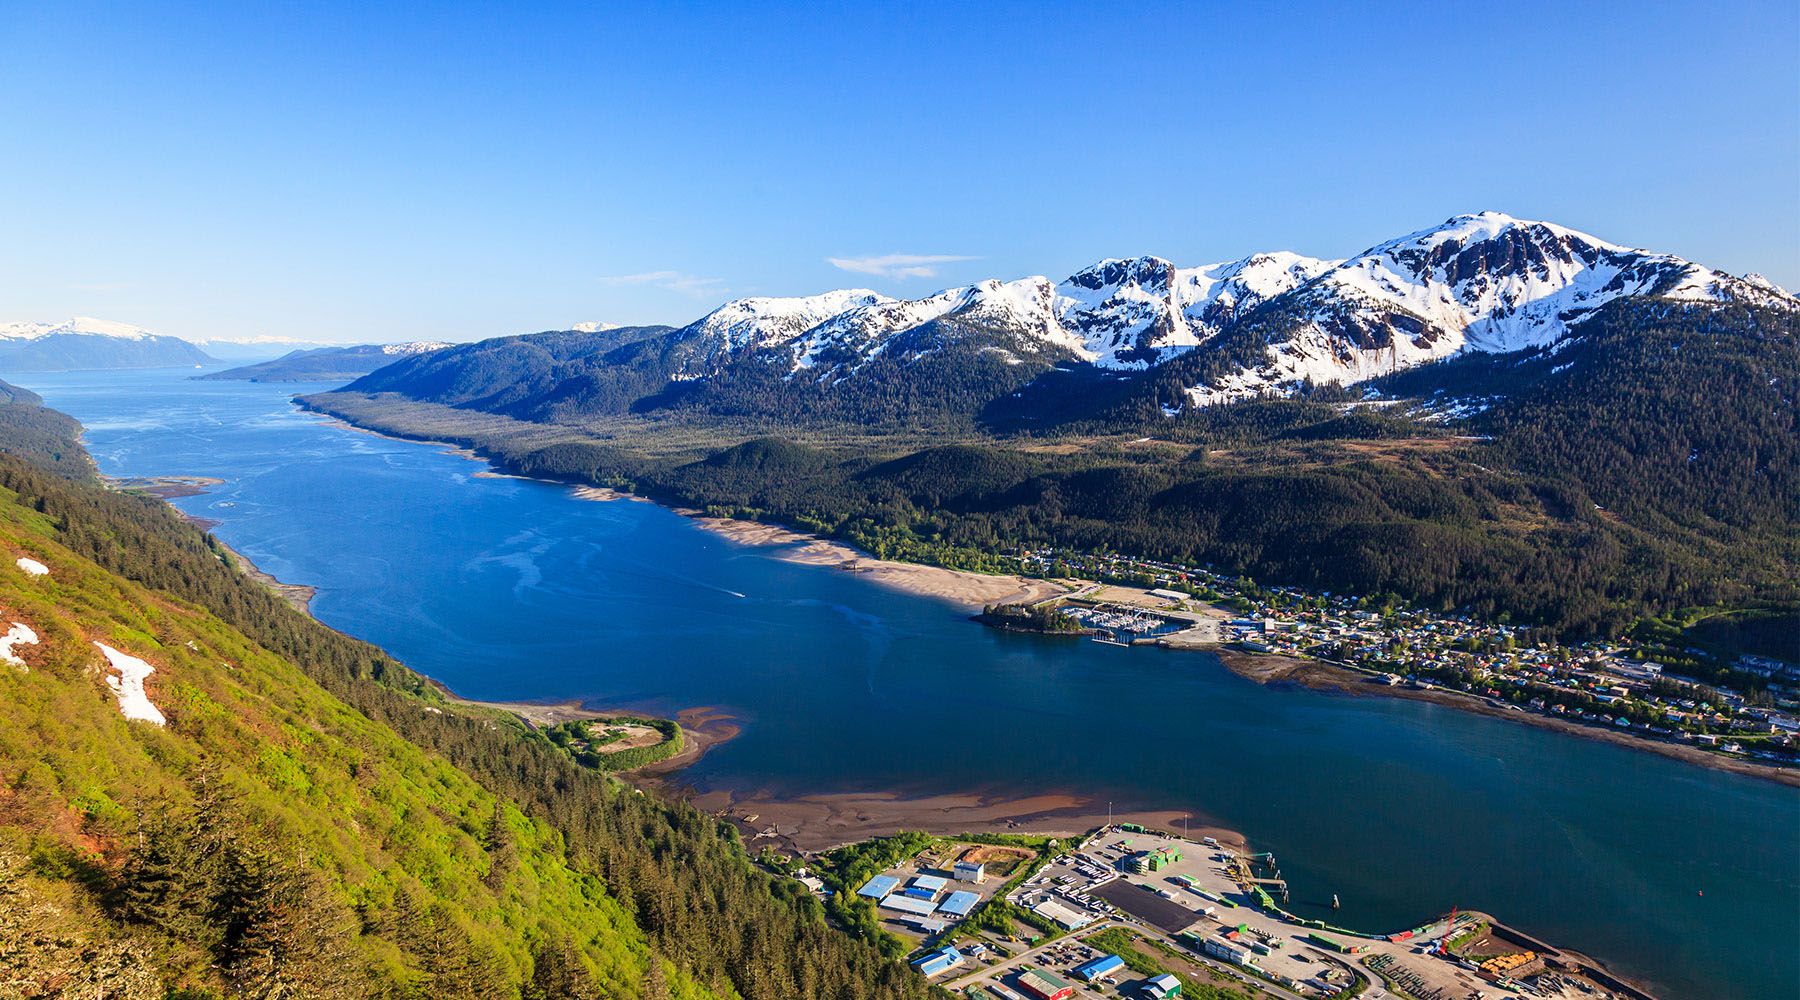 8-NIGHT ALASKA ADVENTURE VOYAGE